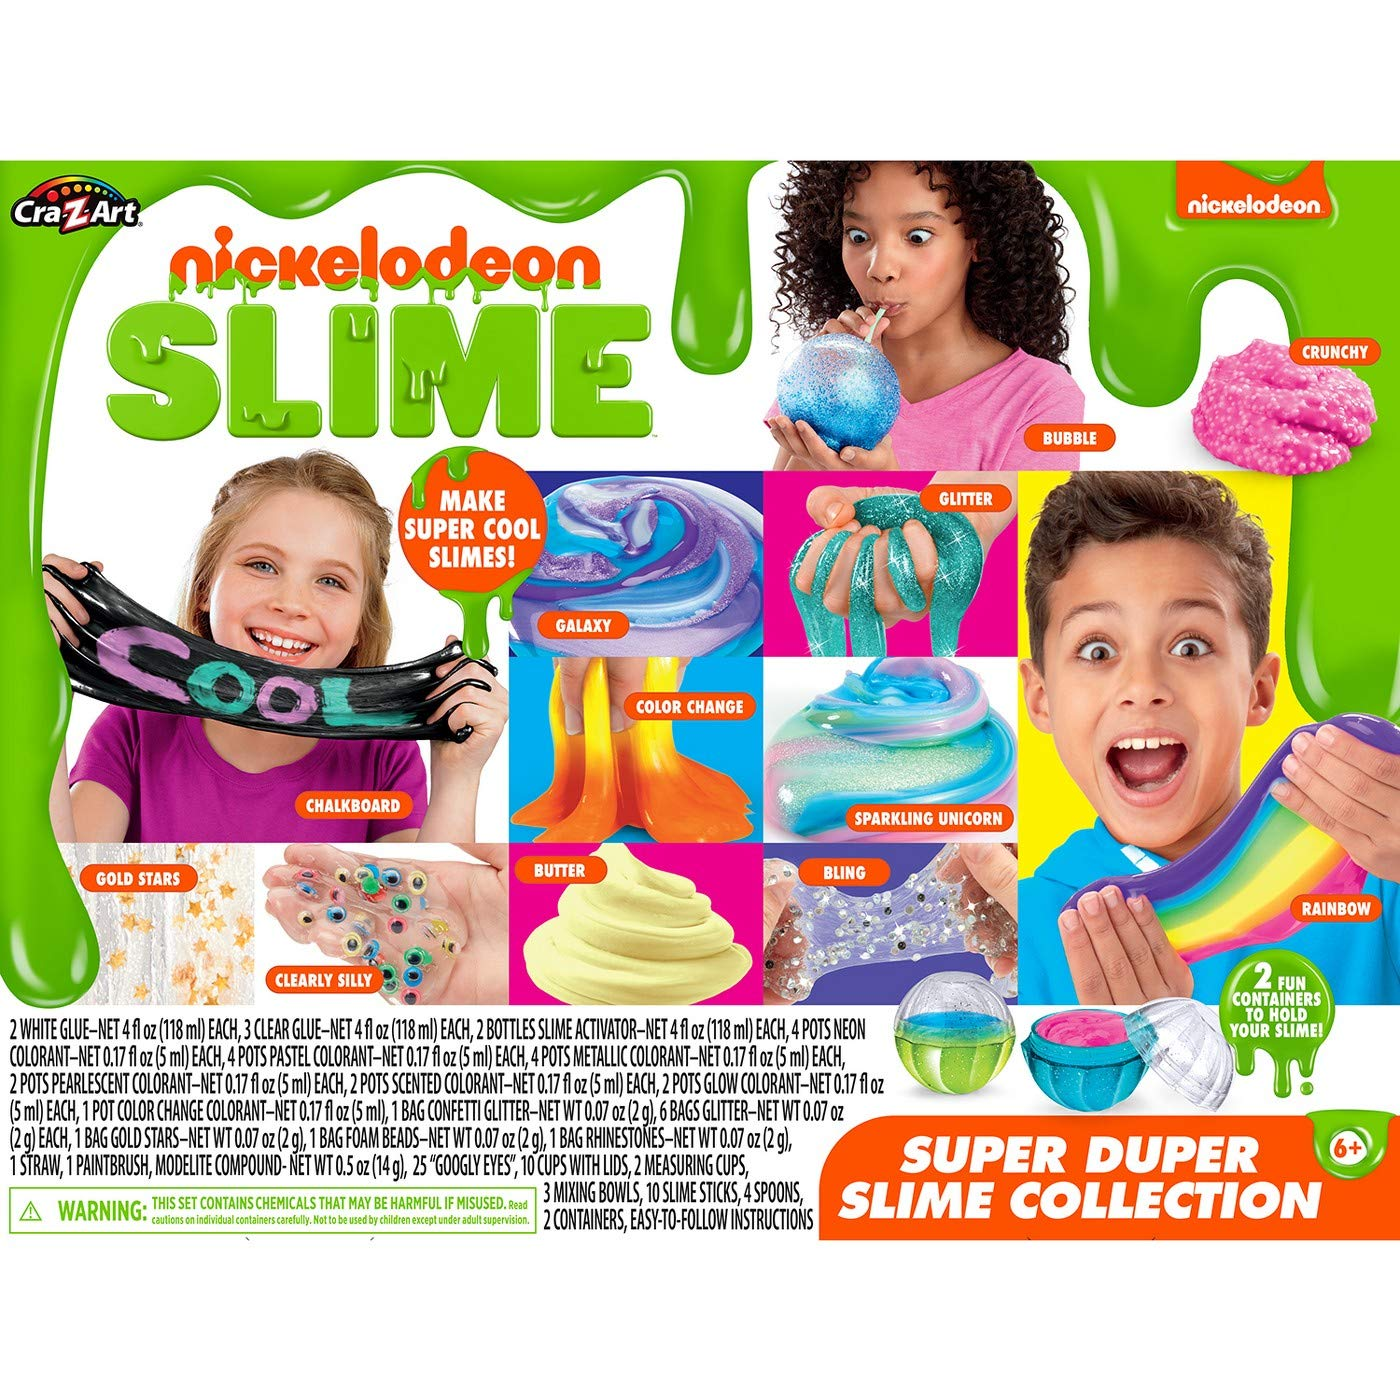 Cra-Z-Art Nickelodeon Super Duper Slime Collection